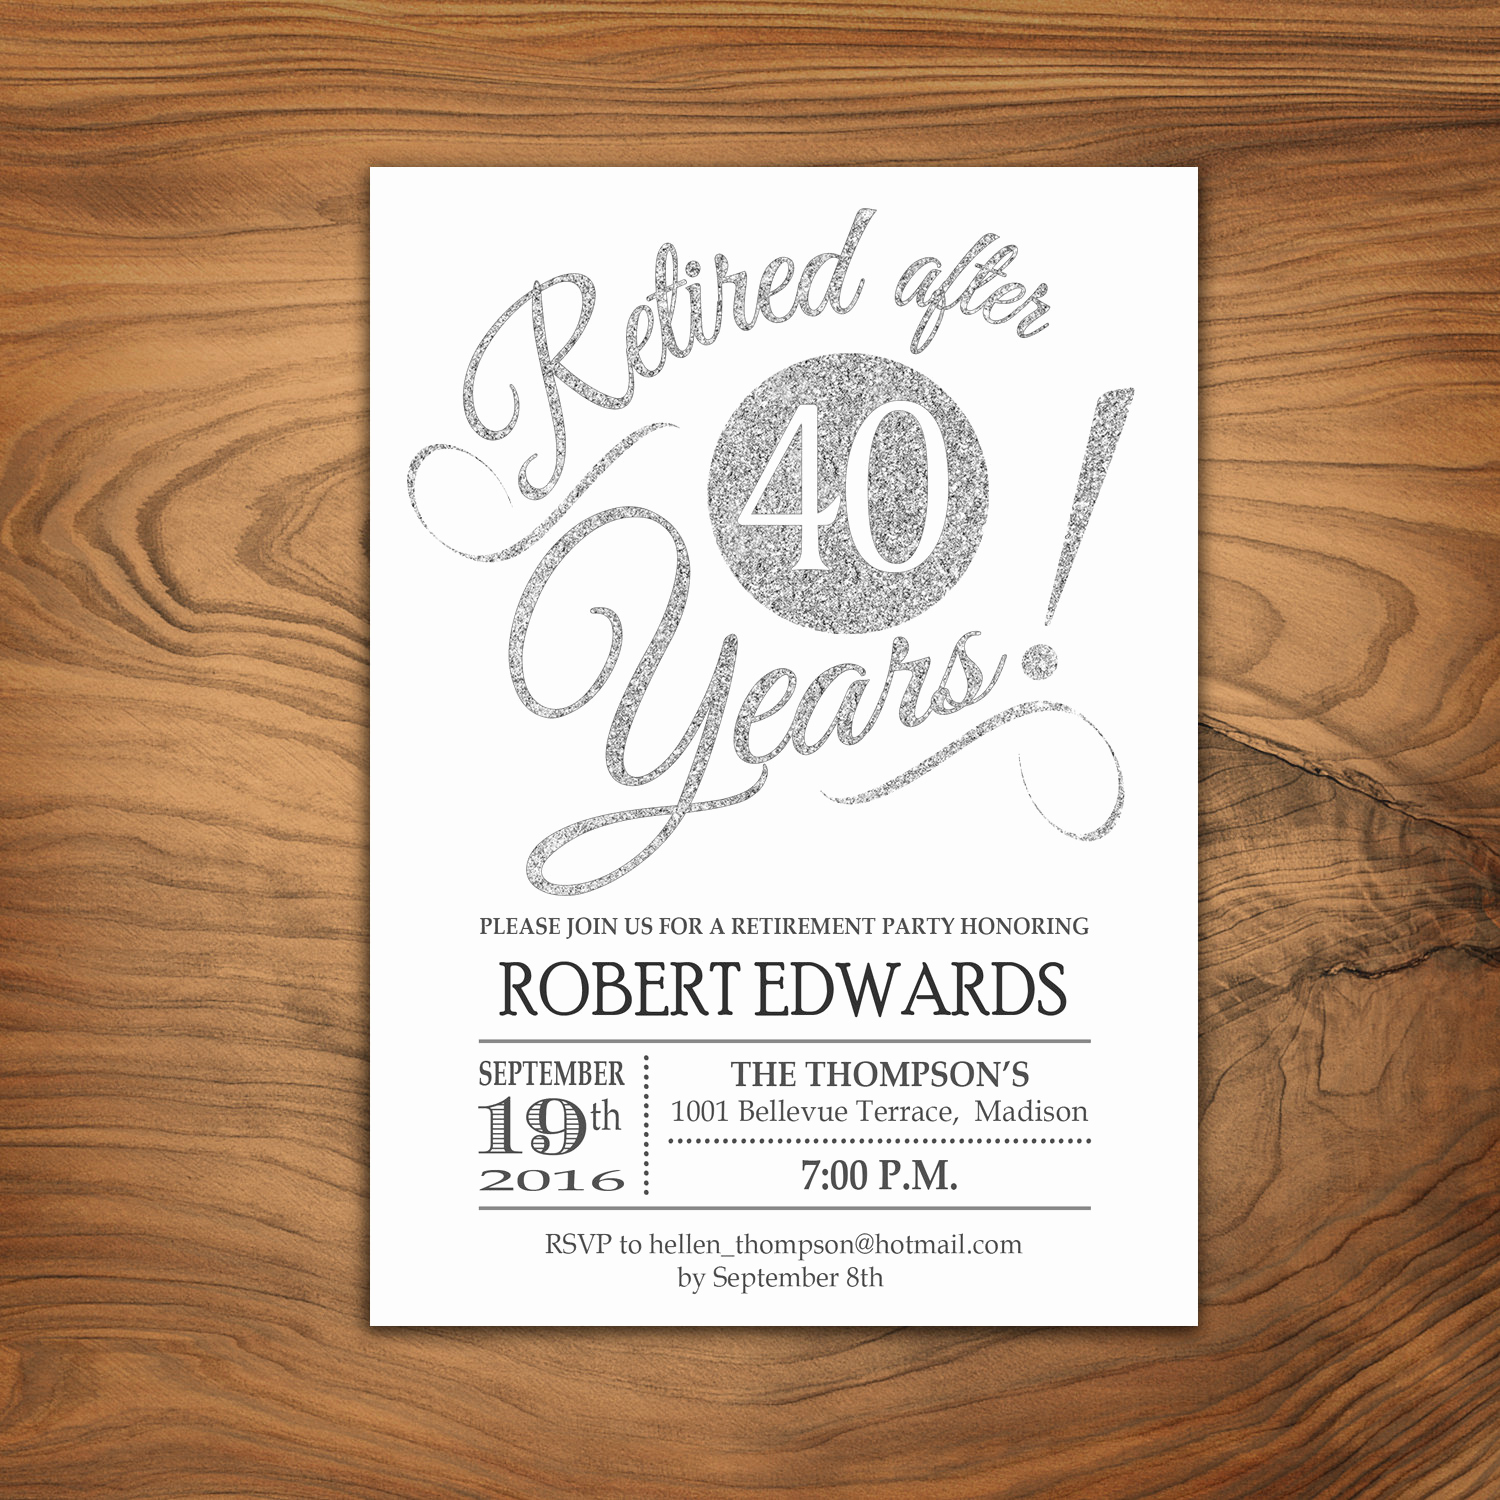 Retirement Party Invitation Template Inspirational Retirement Party Invitation Retirement Invite Printable